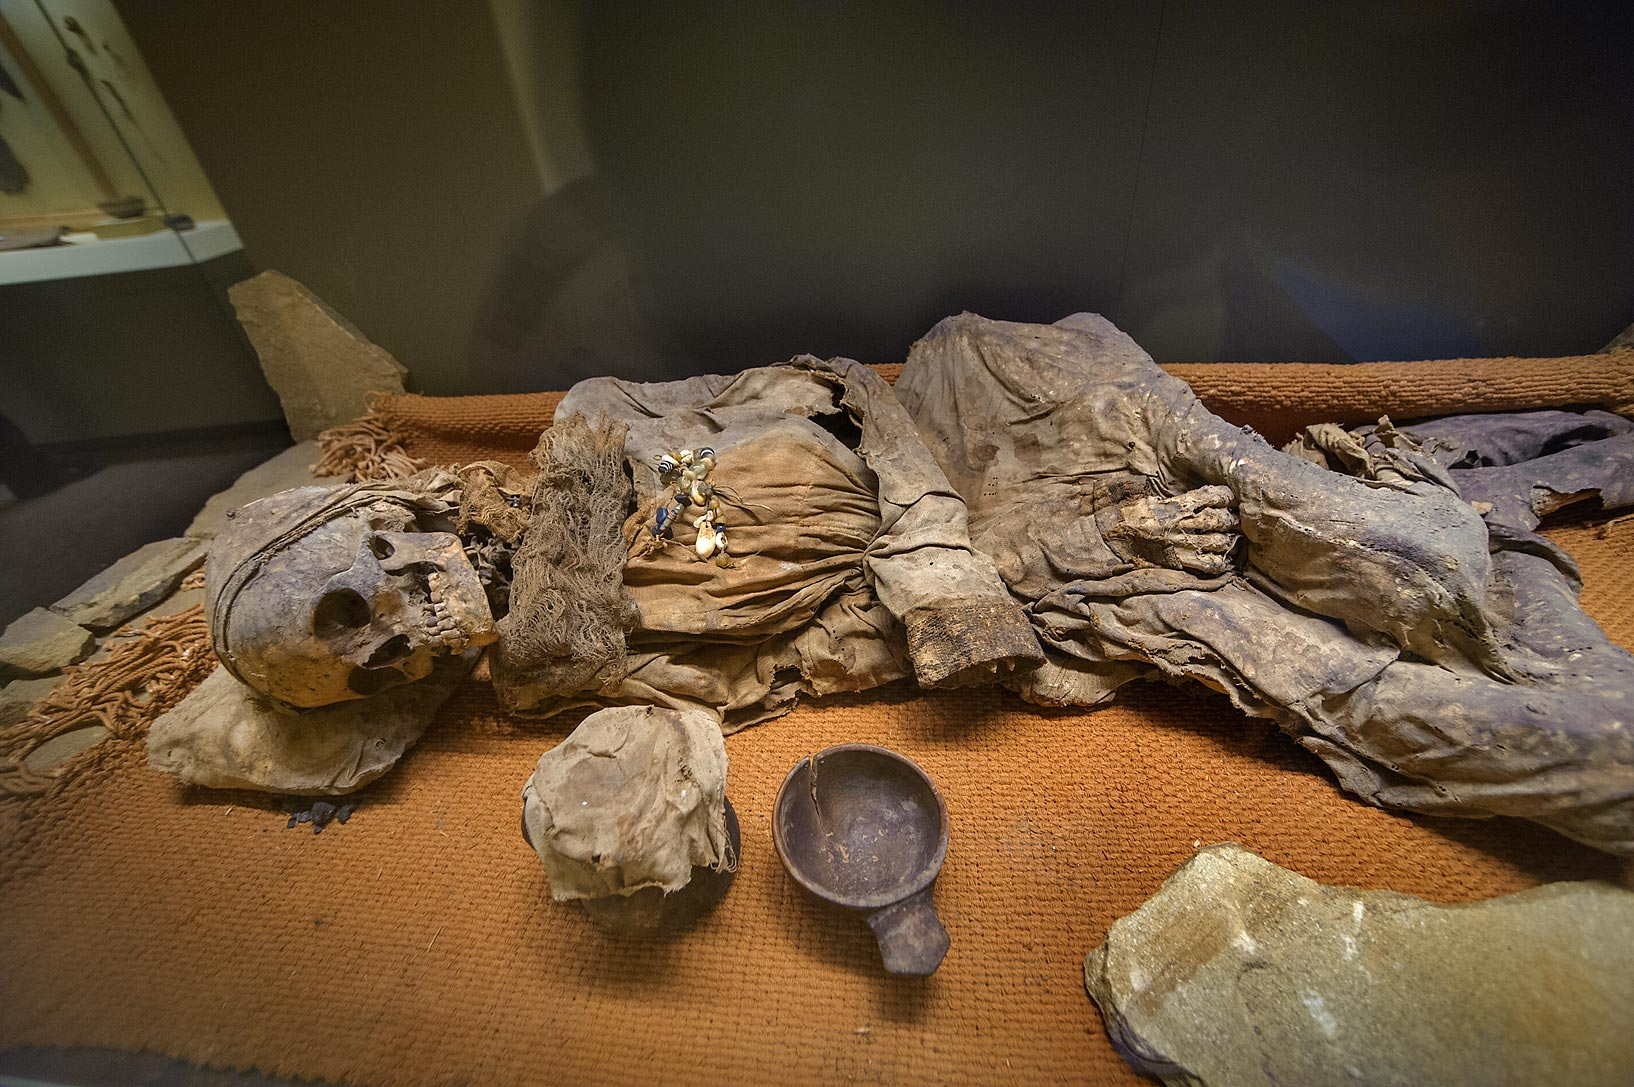 Mummy of a tribe leader in basement in Hermitage Museum. Petersburg, Russia